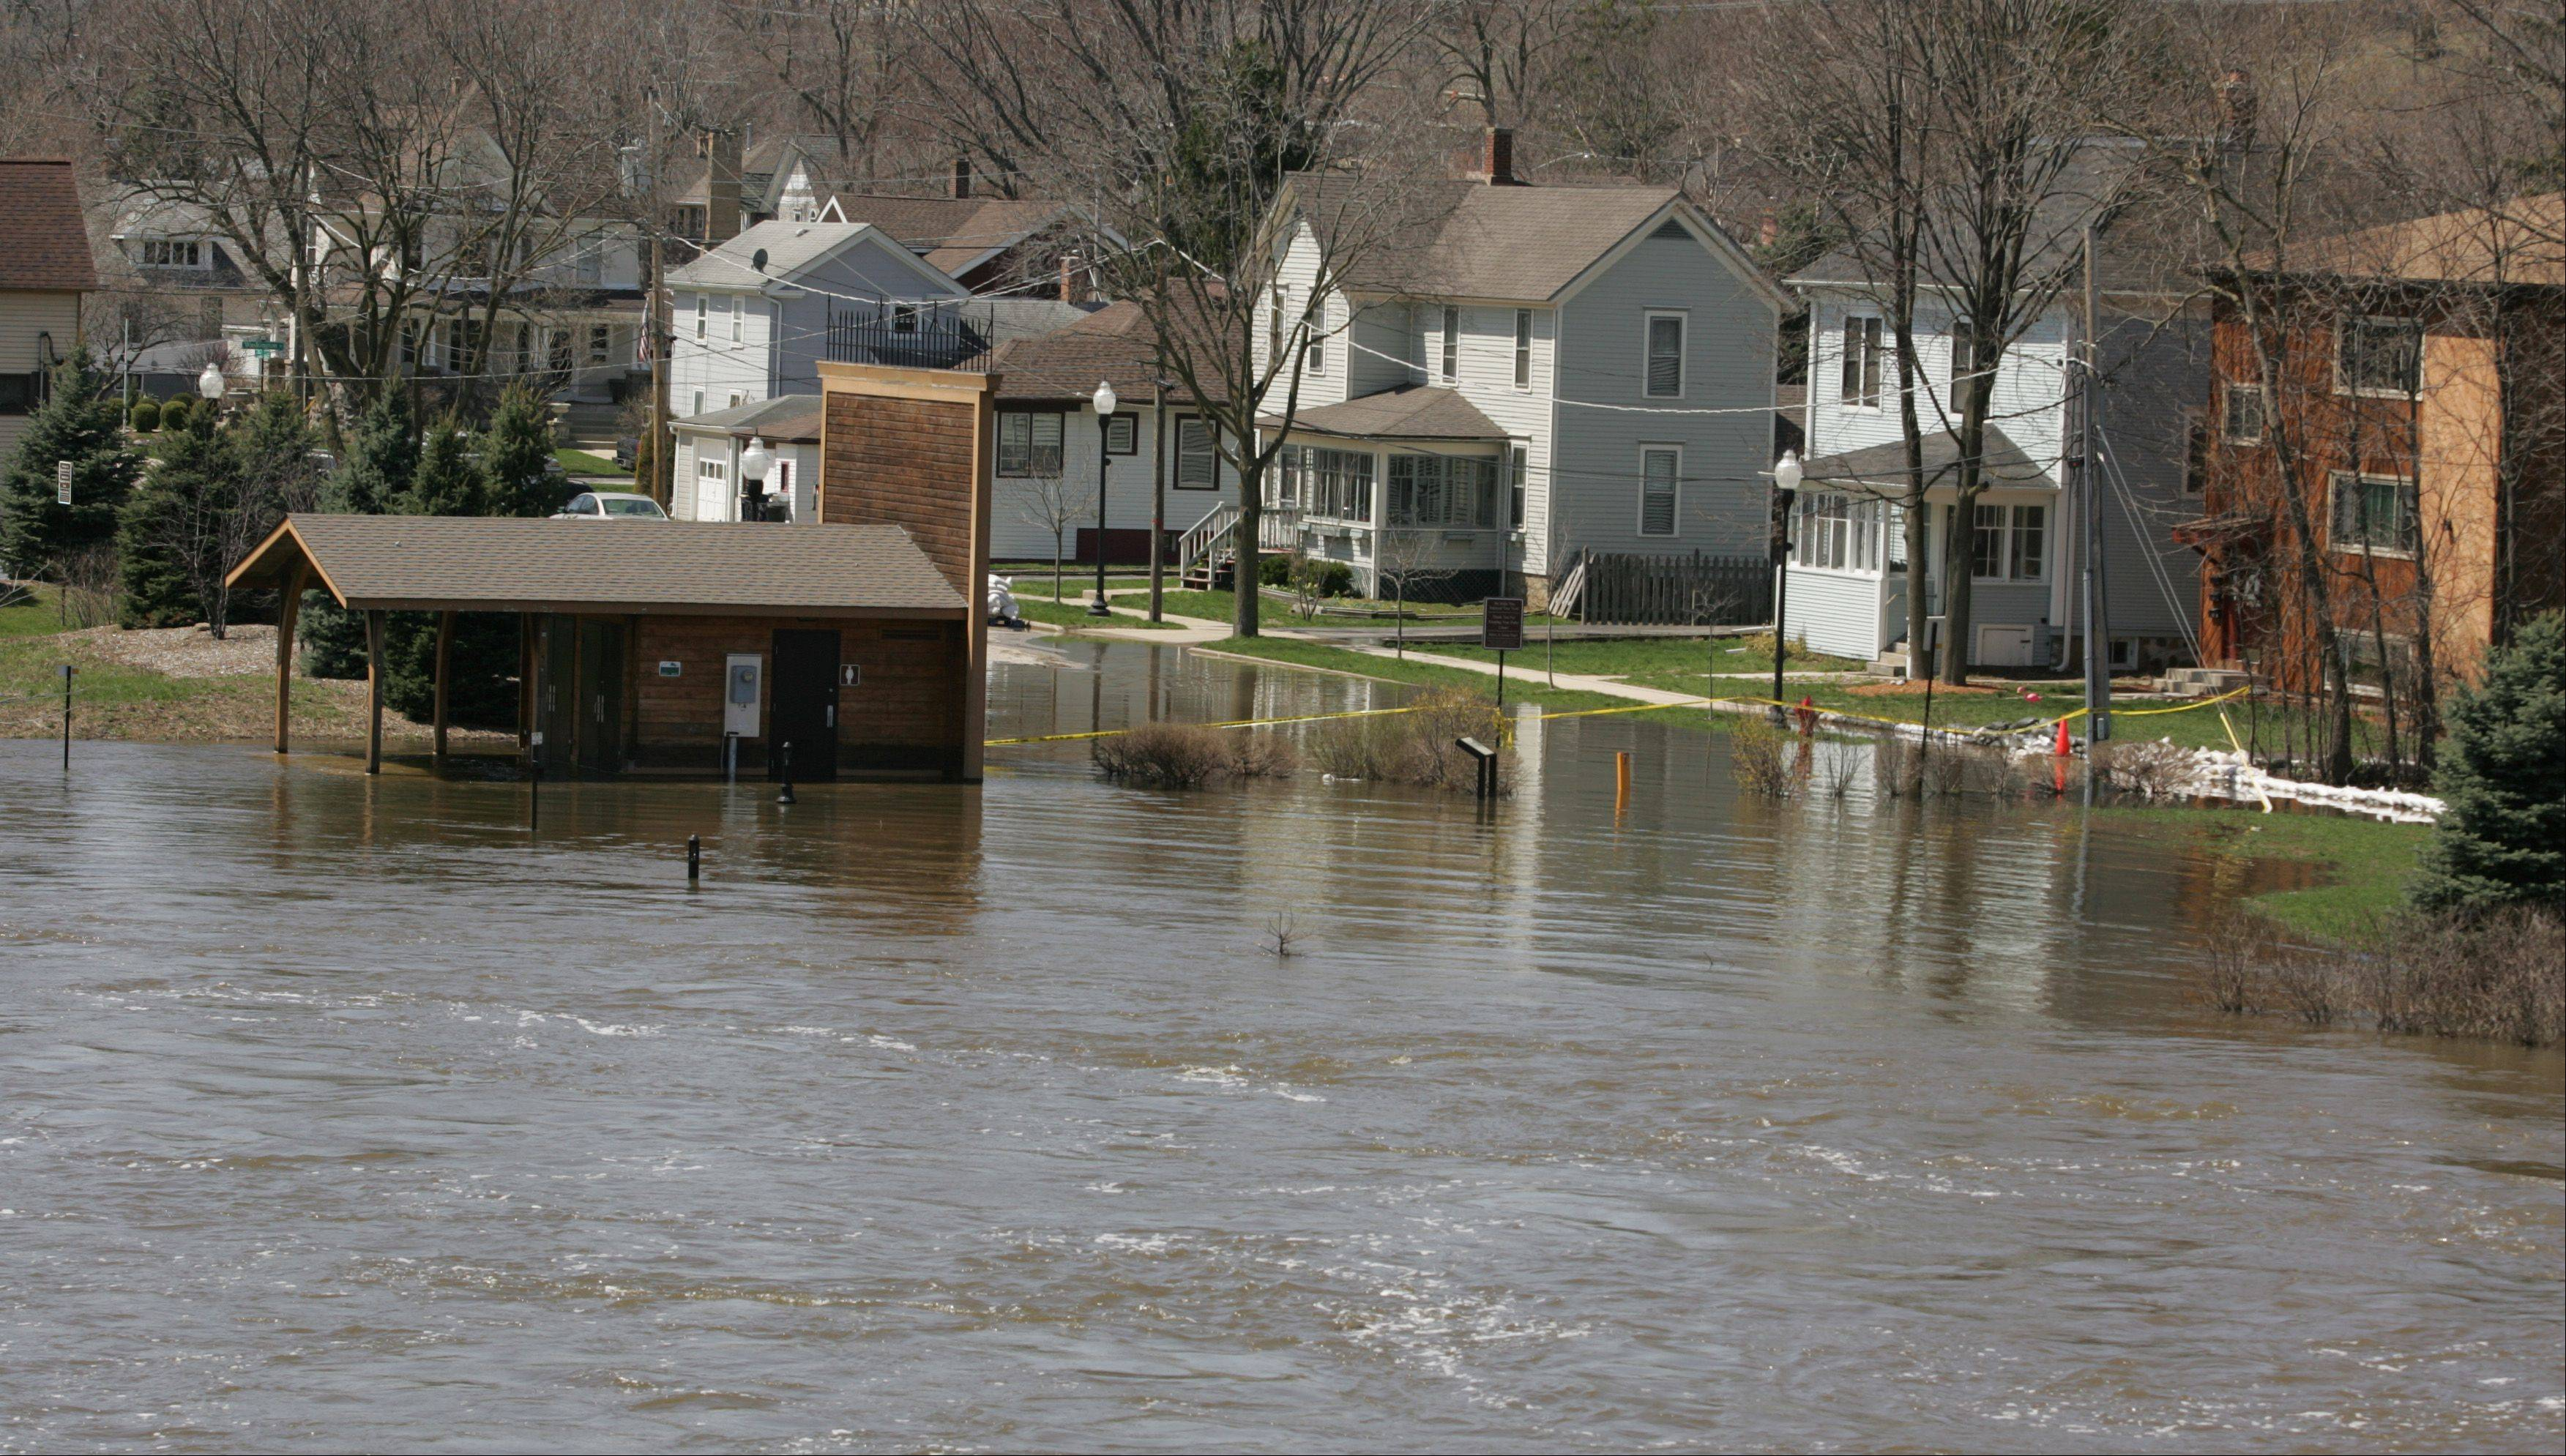 Cornish Park in Algonquin, and several homes located south of it, are inundated with floodwaters from the Fox River even on Monday morning.